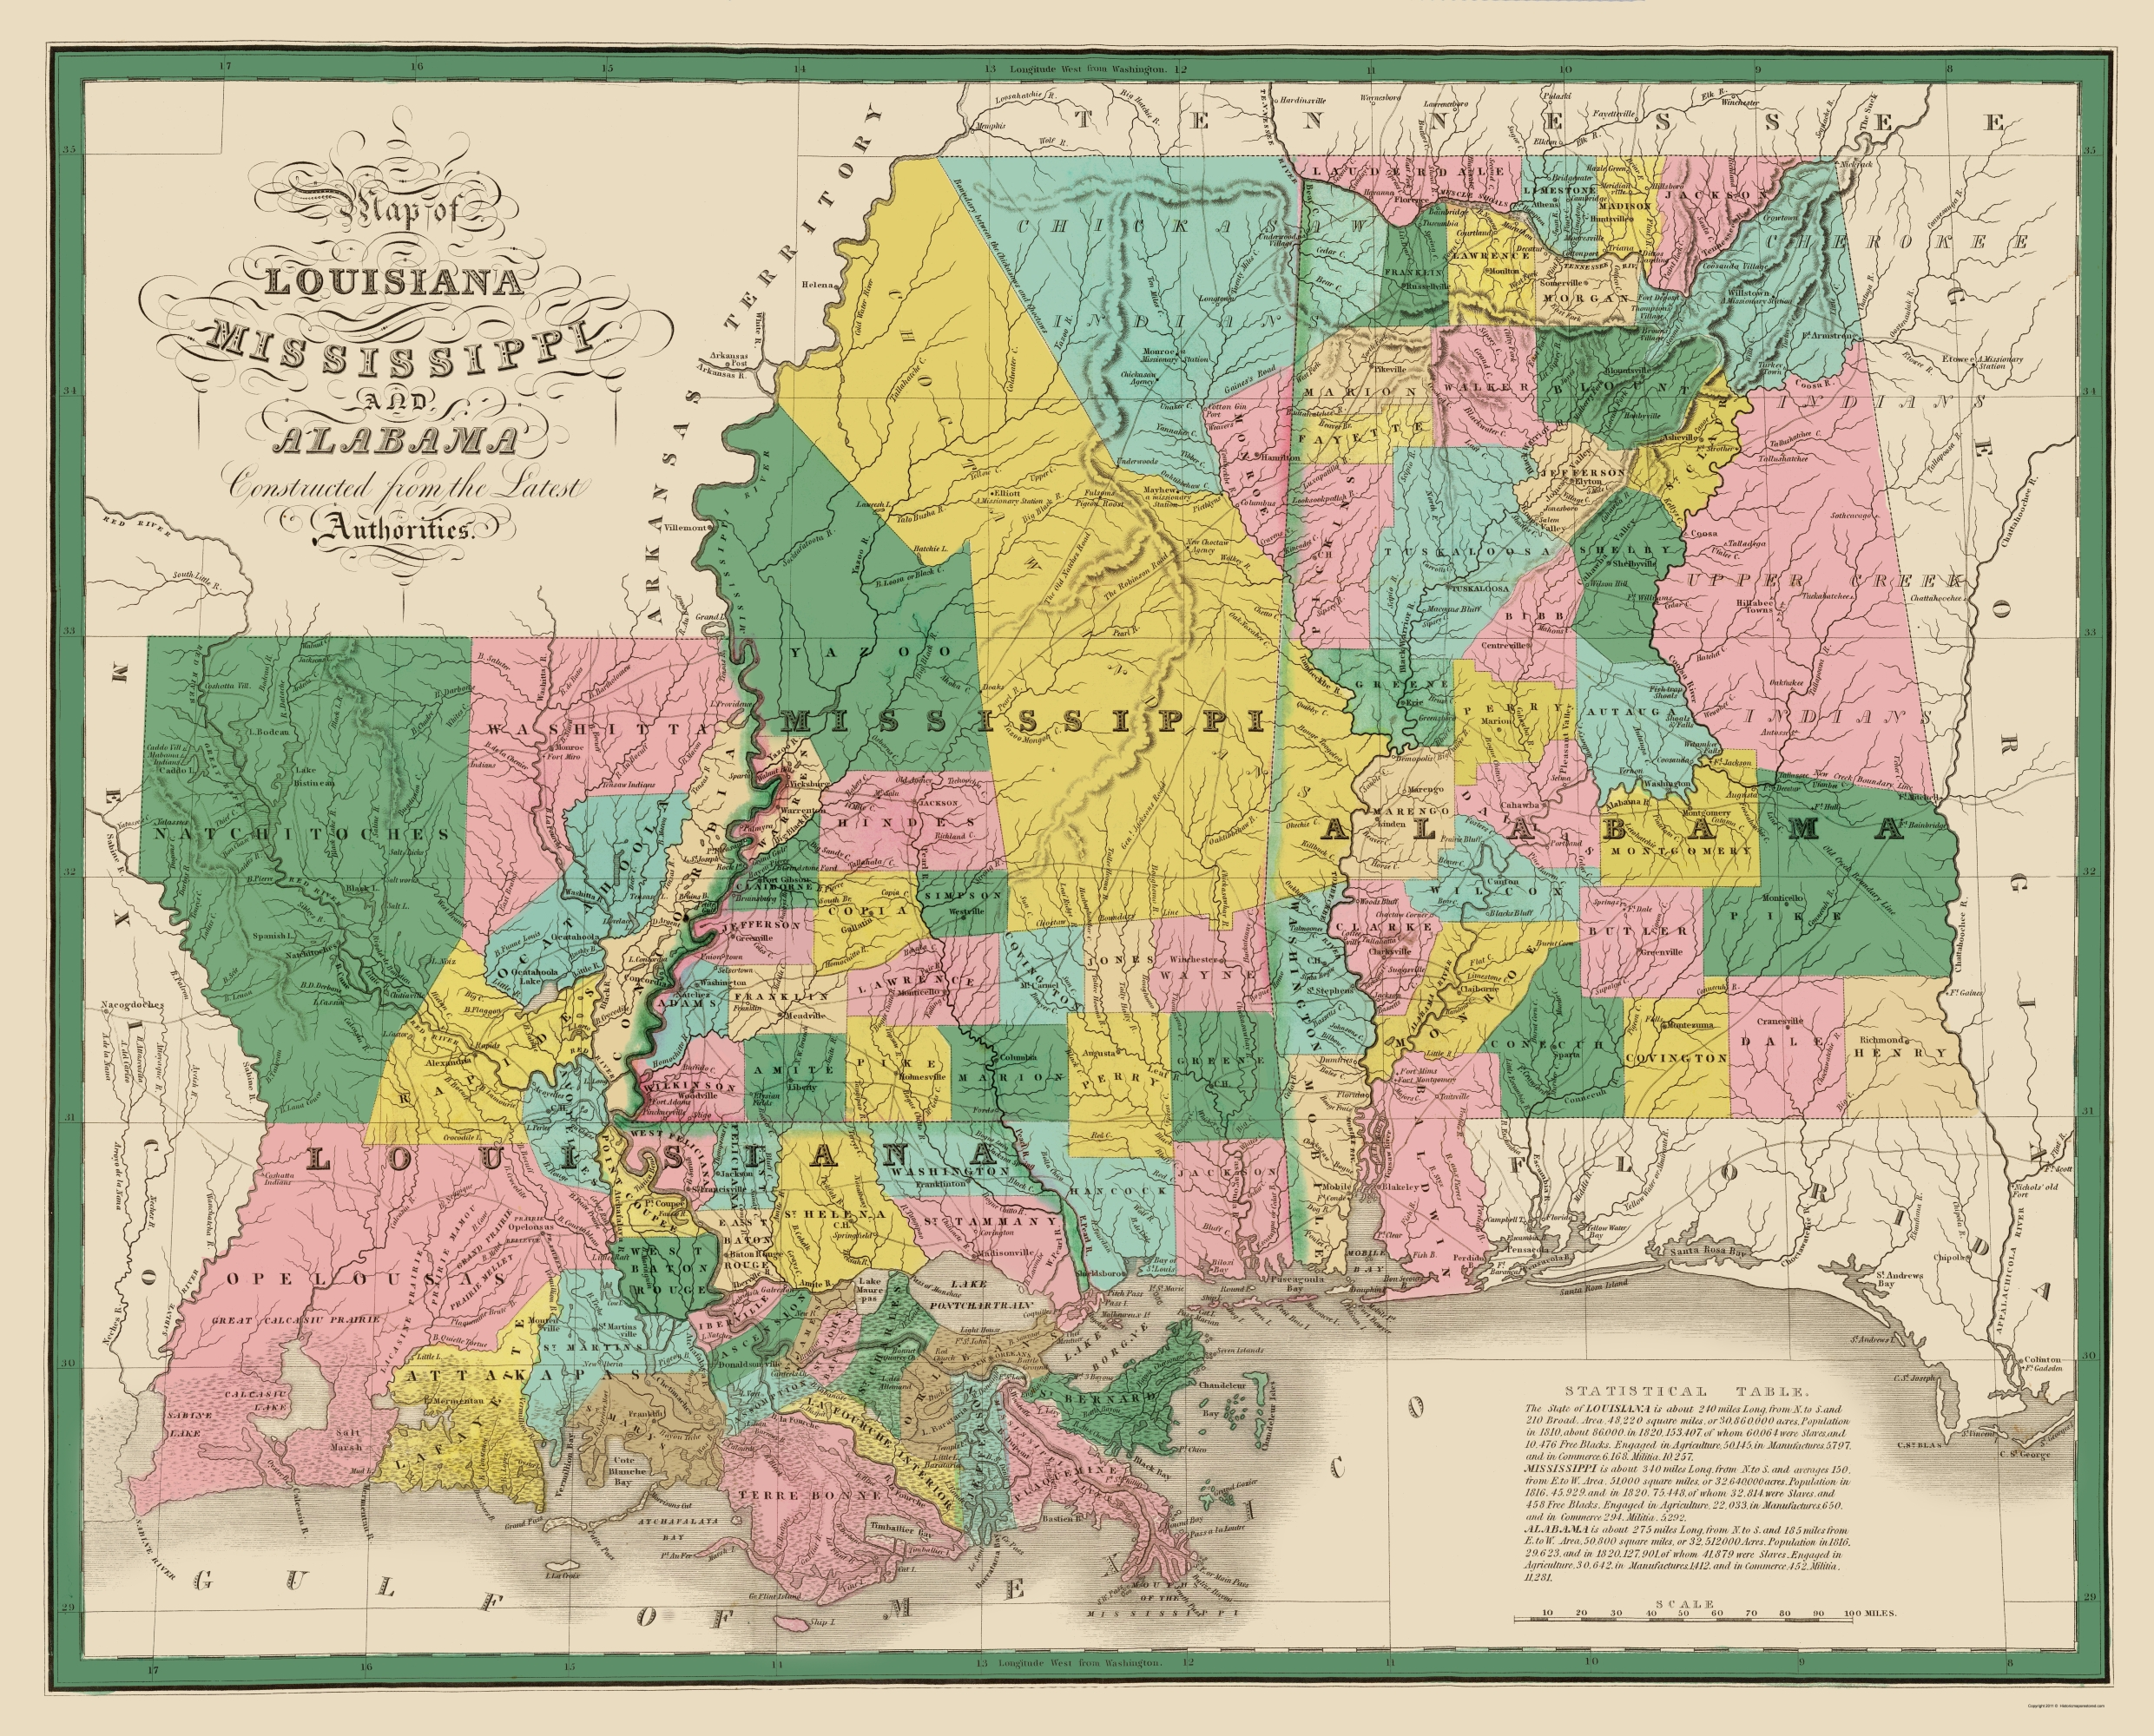 old state map louisiana mississippi alabama 1827